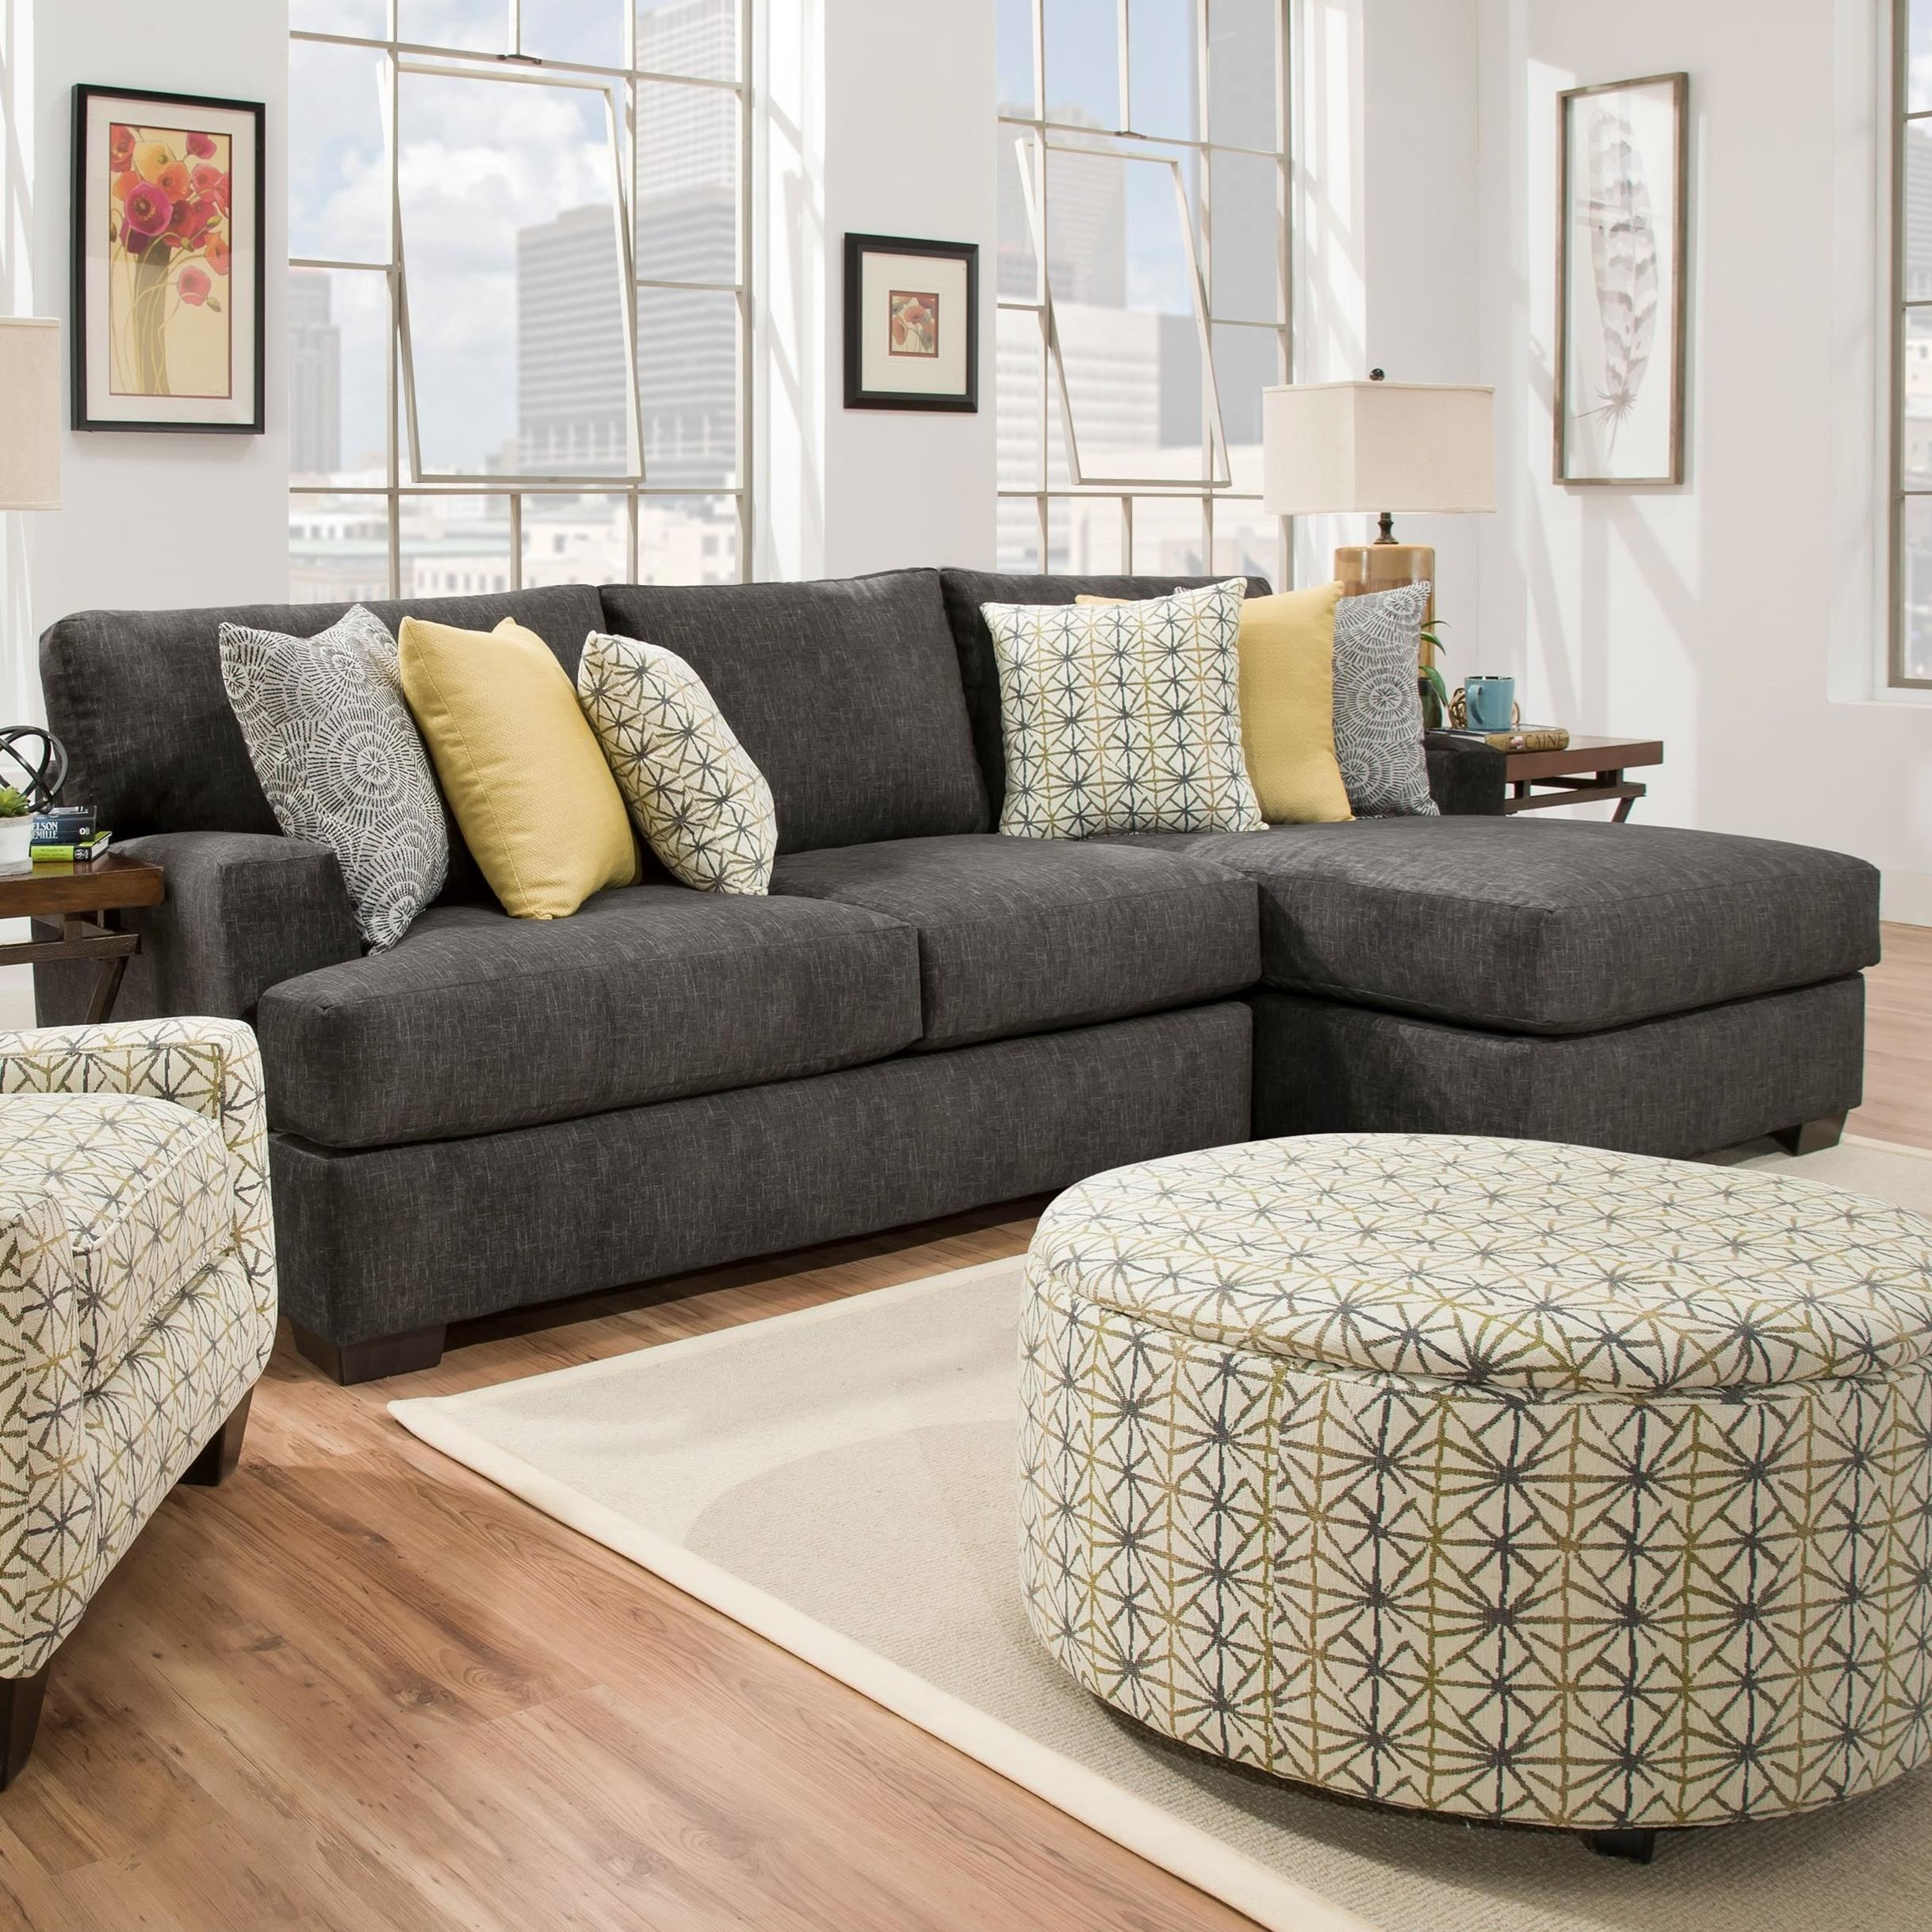 Corinthian 29C0 Three Seat Sectional with Chaise - Item Number: 29C2LC+5RF